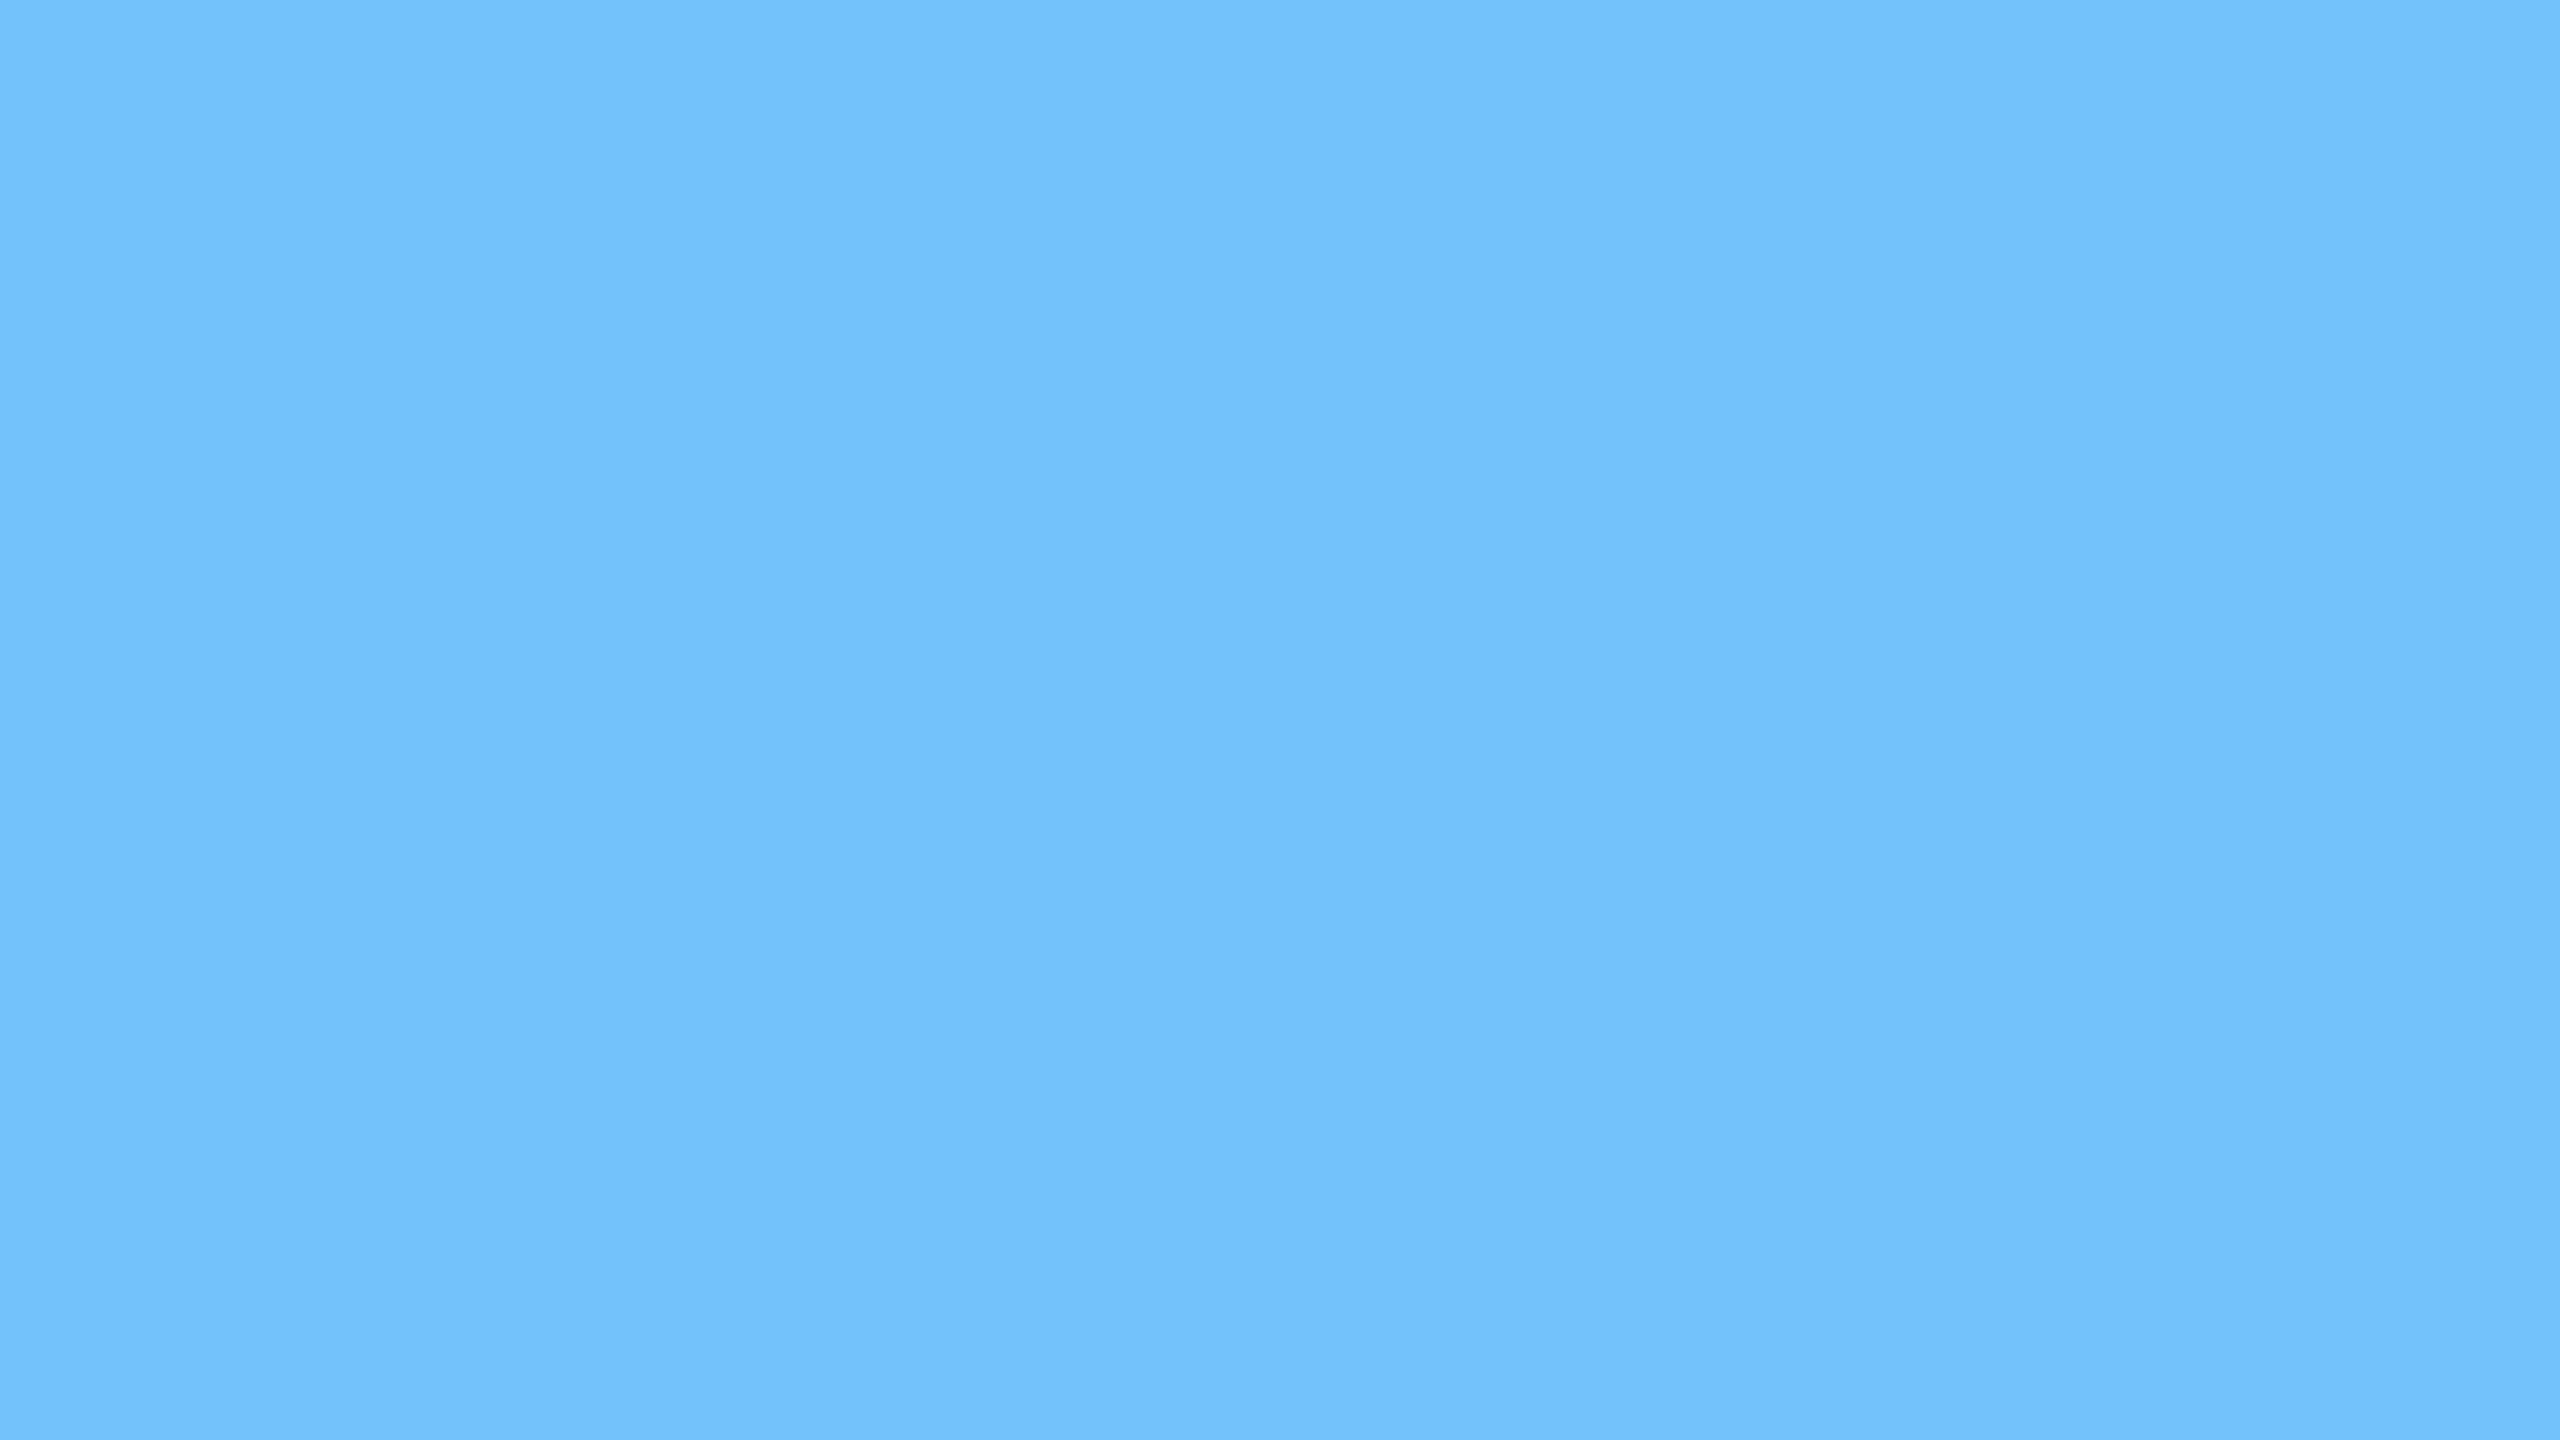 2560x1440 Maya Blue Solid Color Background